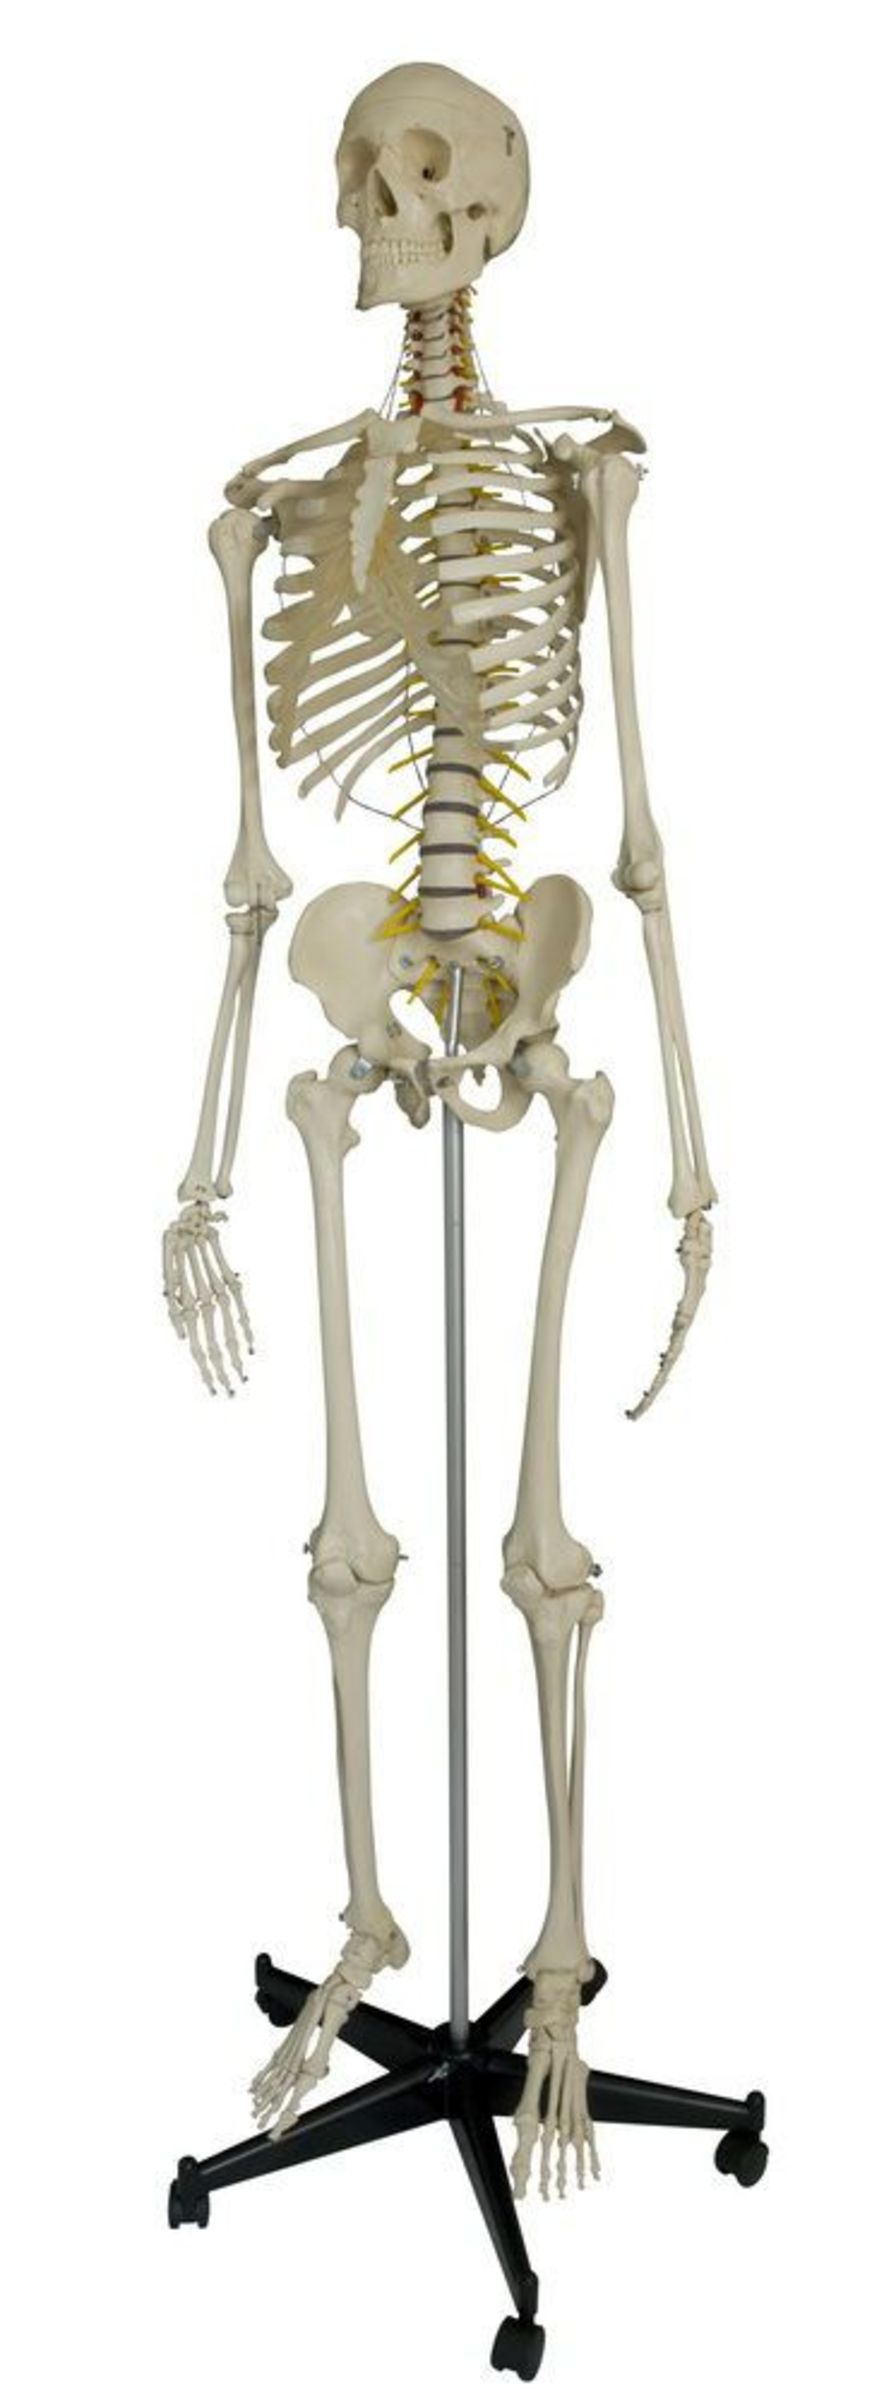 Skeleton anatomical model / with flexible spine / articulated A200.2 RÜDIGER - ANATOMIE